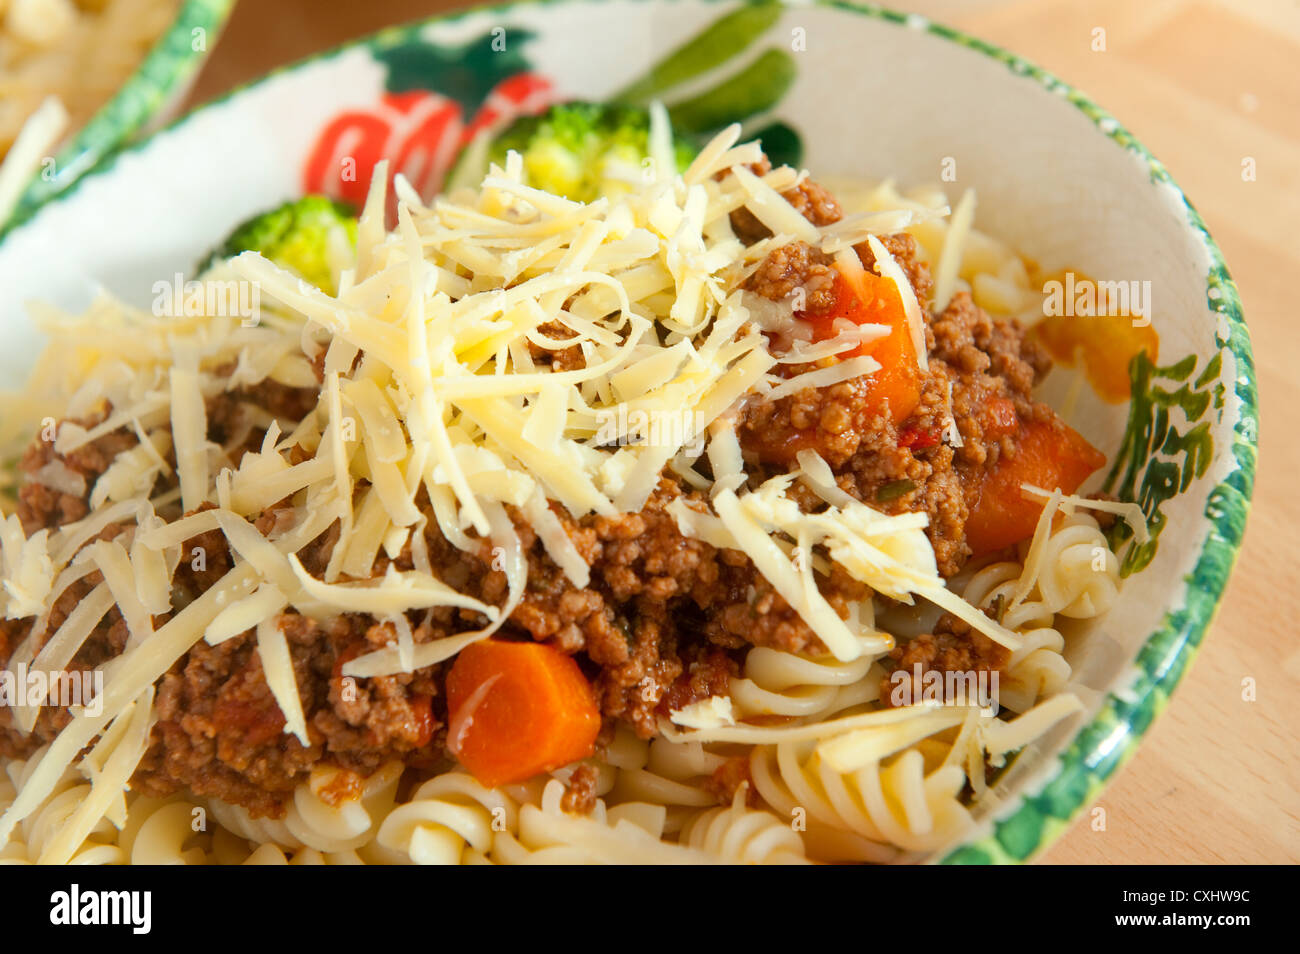 Bowl of pasta and meat sauce topped with grated cheese. - Stock Image